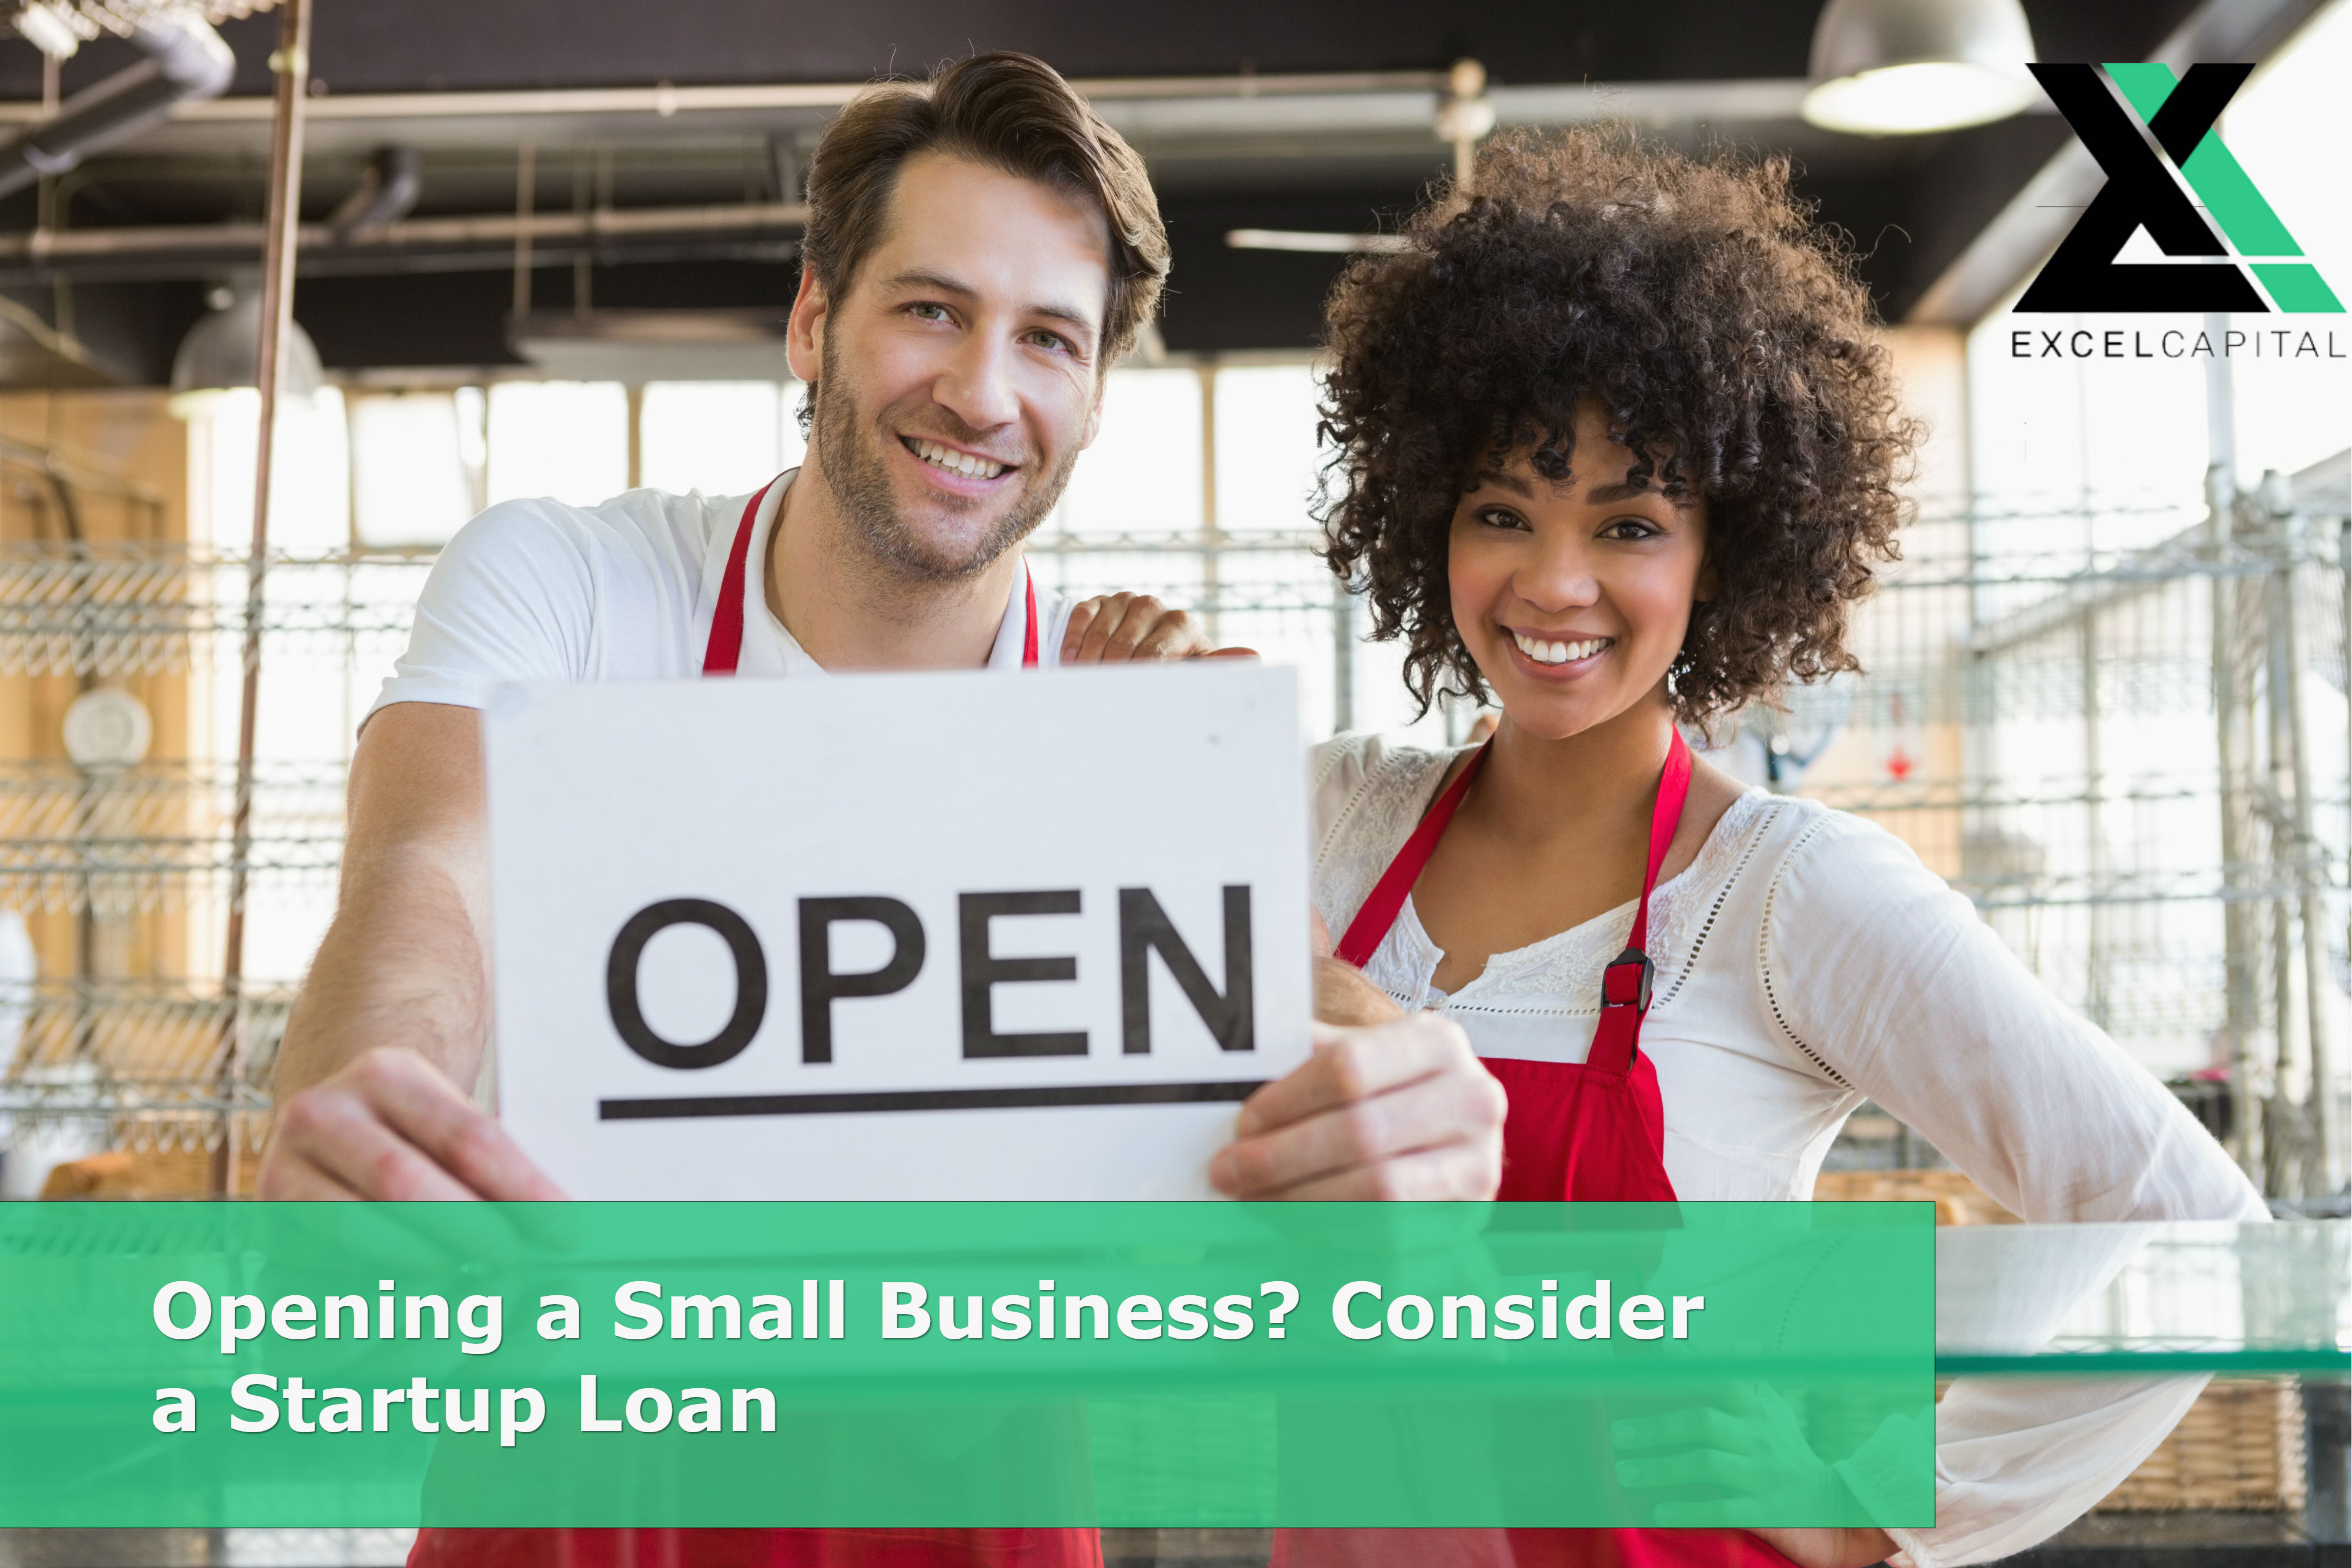 Opening a Small Business? Consider a Startup Loan